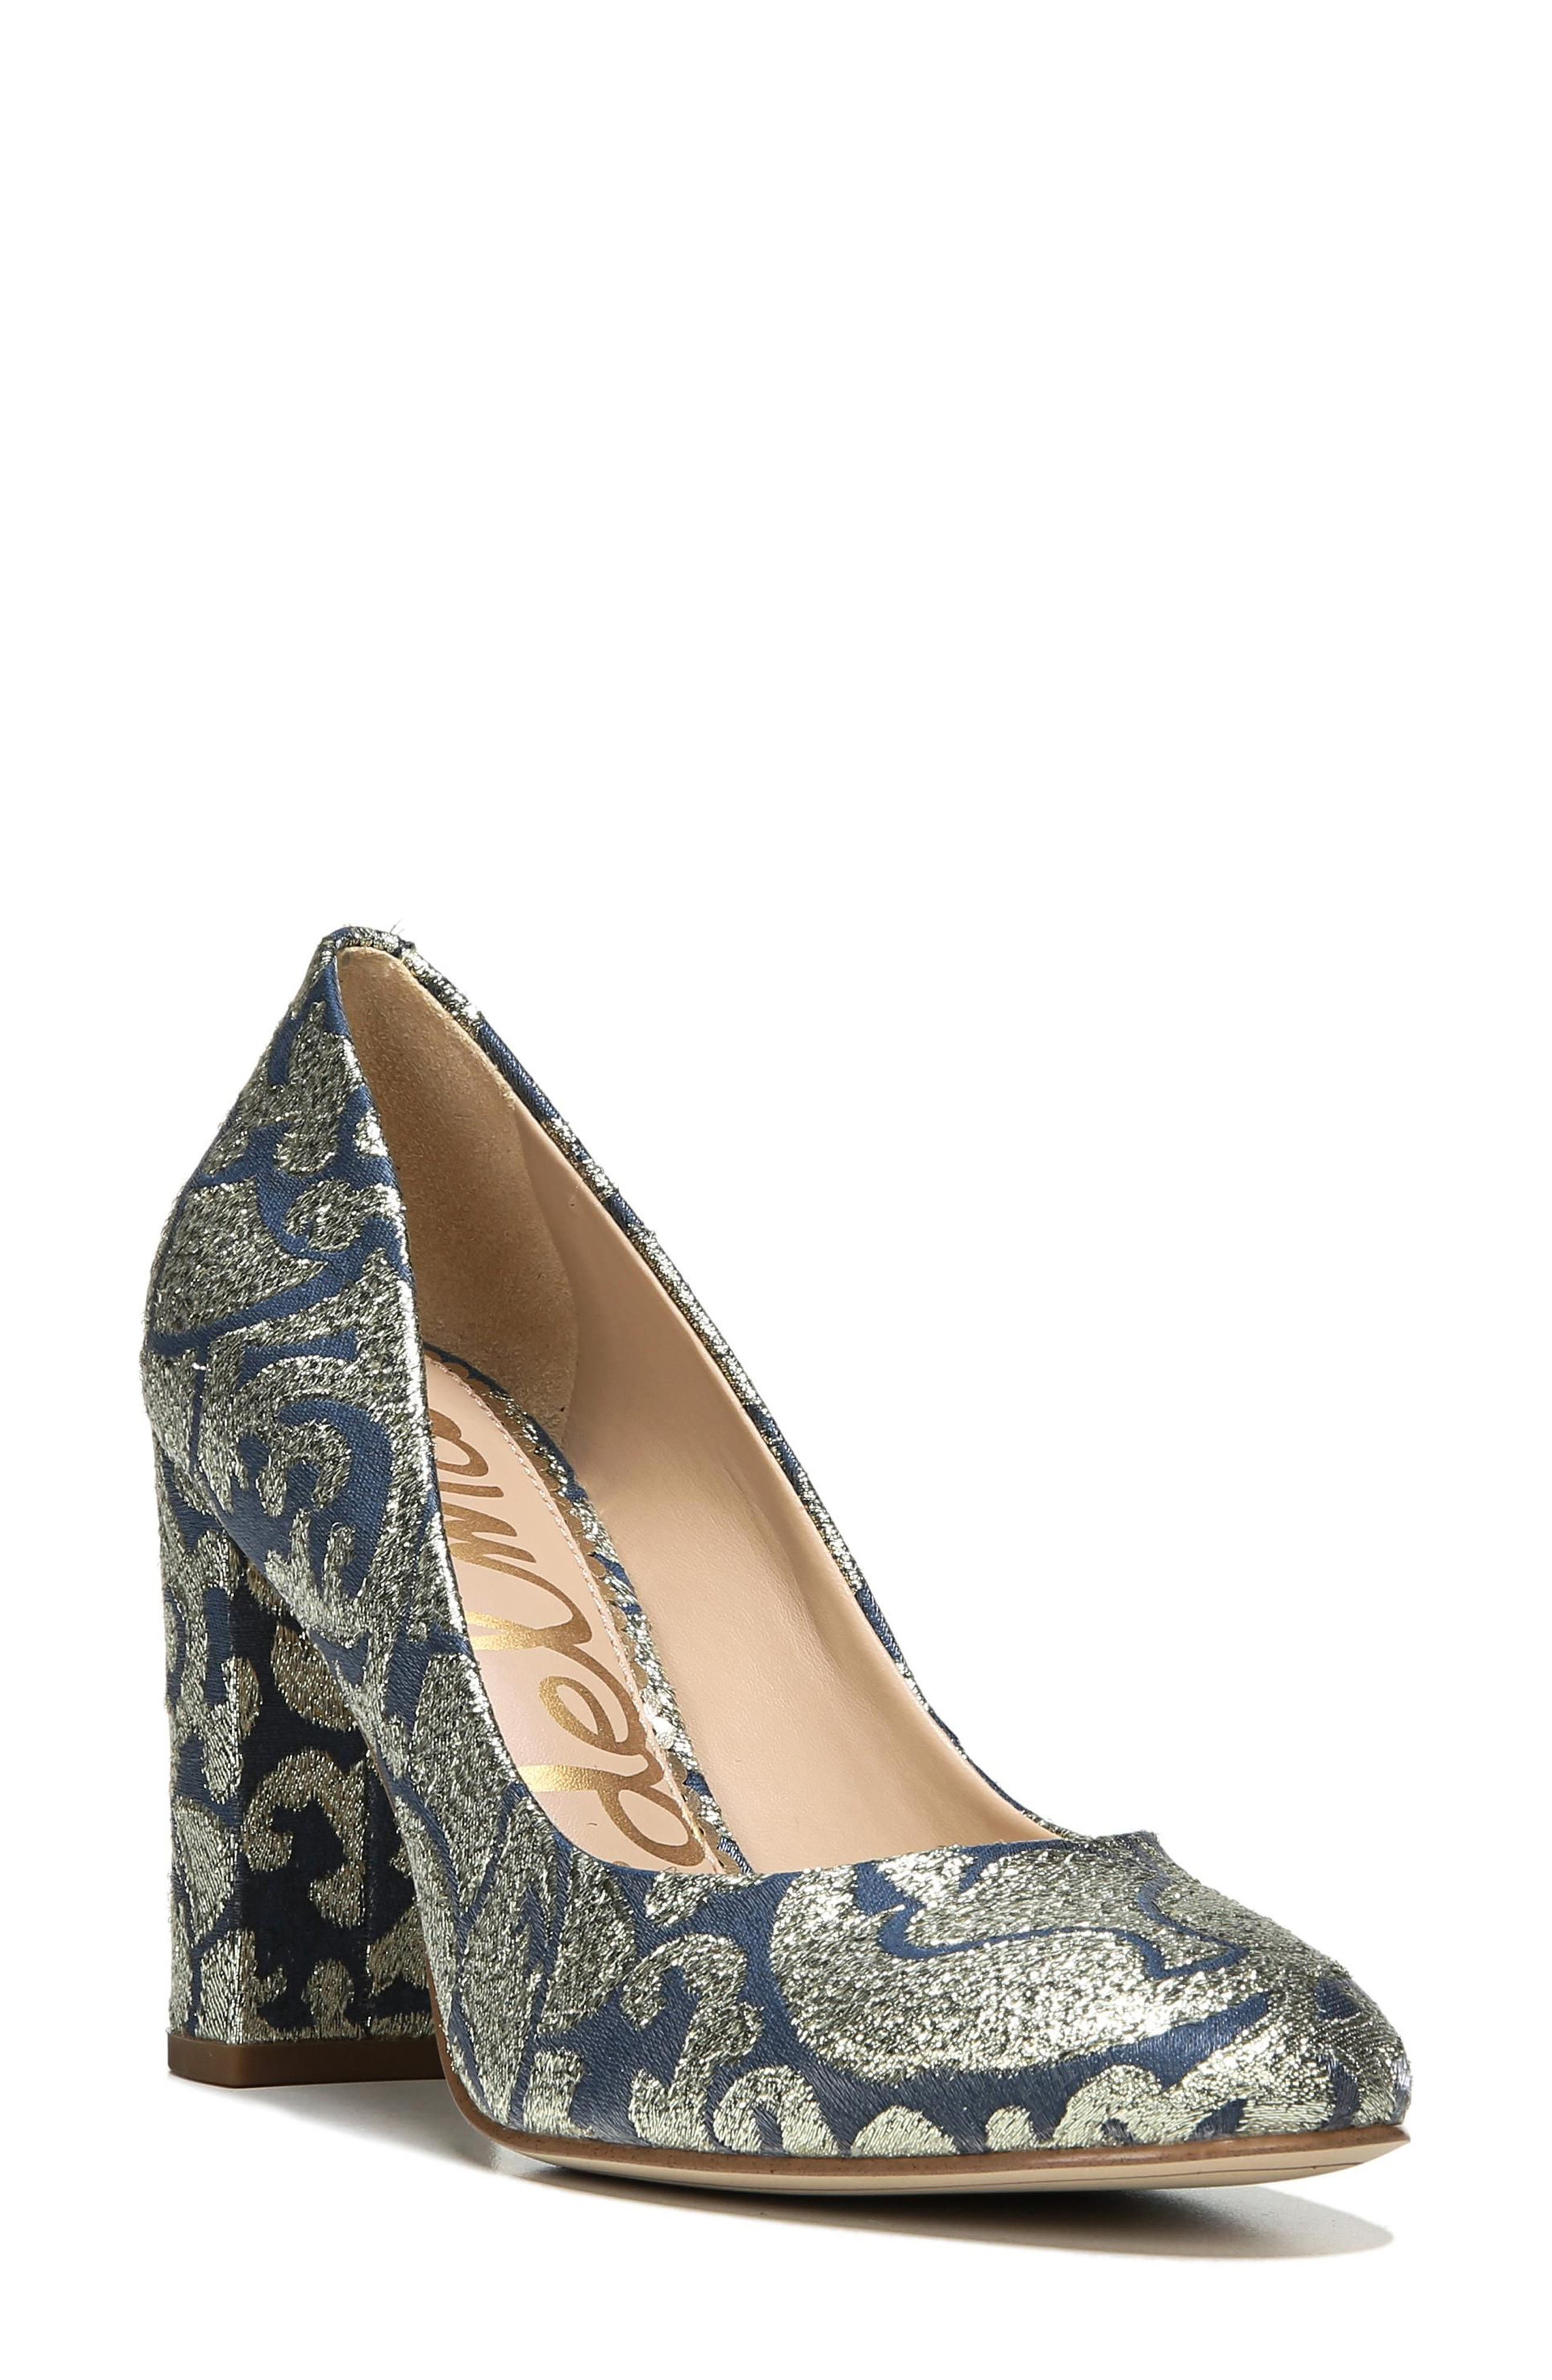 Sam Edelman Stillson Pump (Women)